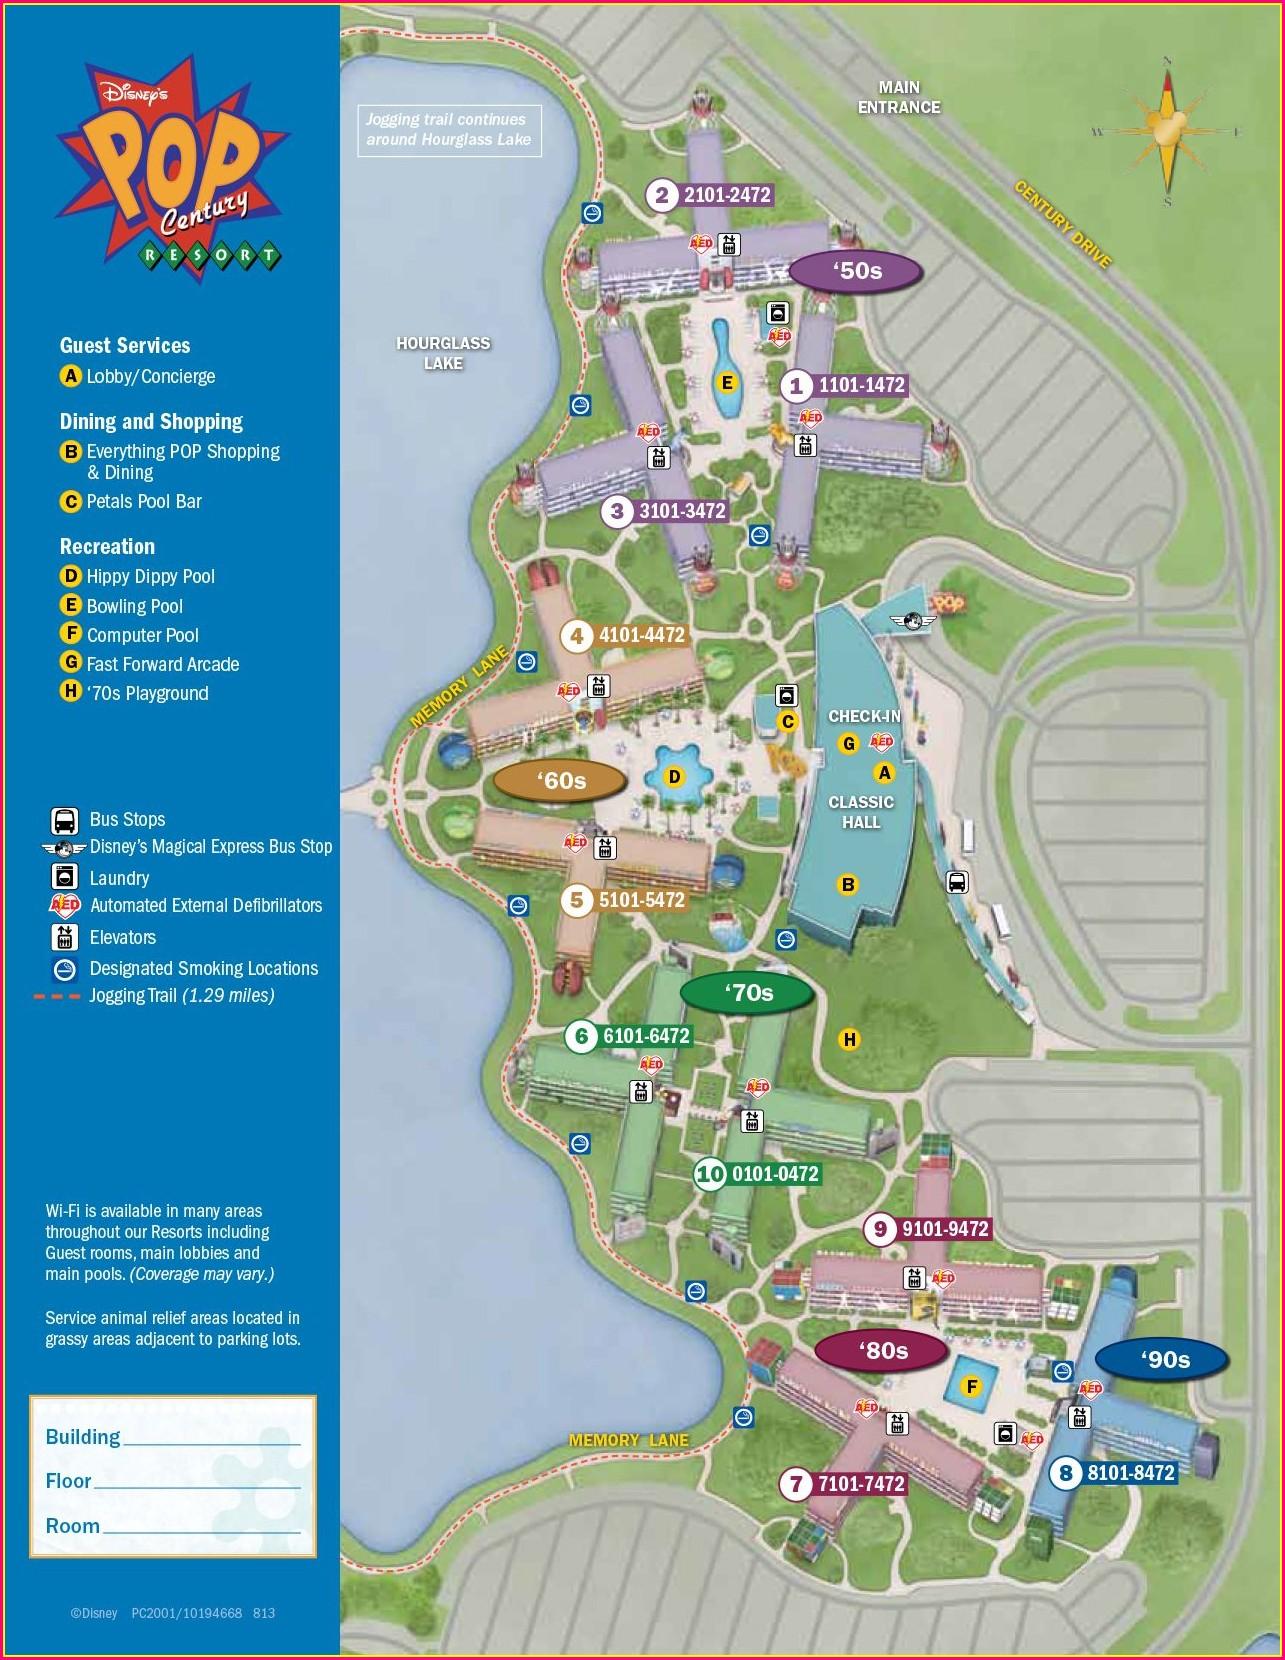 Walt Disney World Pop Century Resort Map